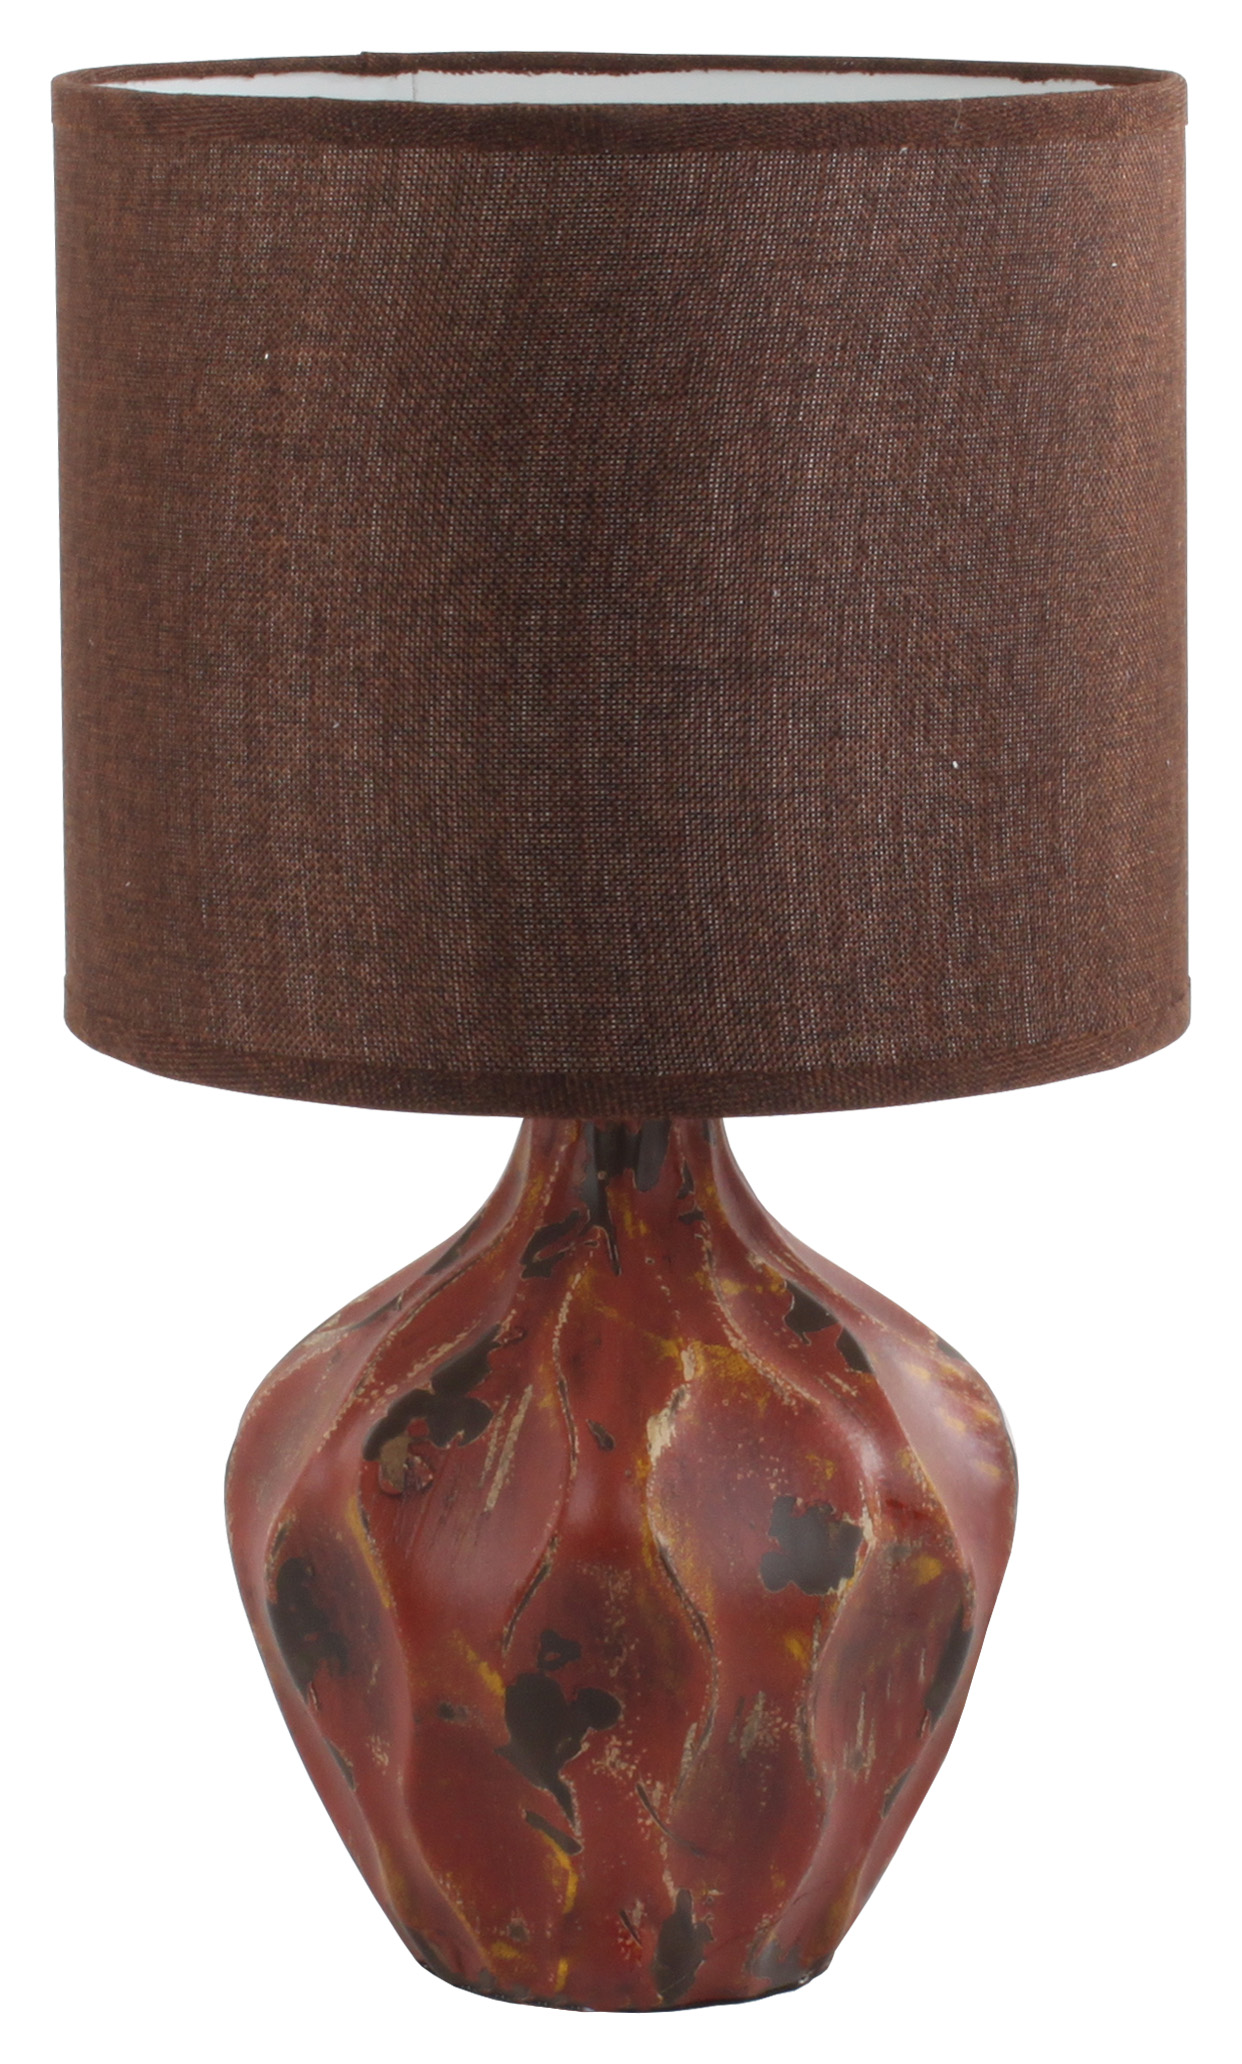 €55 CERAMIC TABLE LAMP IN DARK RED W/FABRIC SHADE 28Χ48 (POLYESTER)